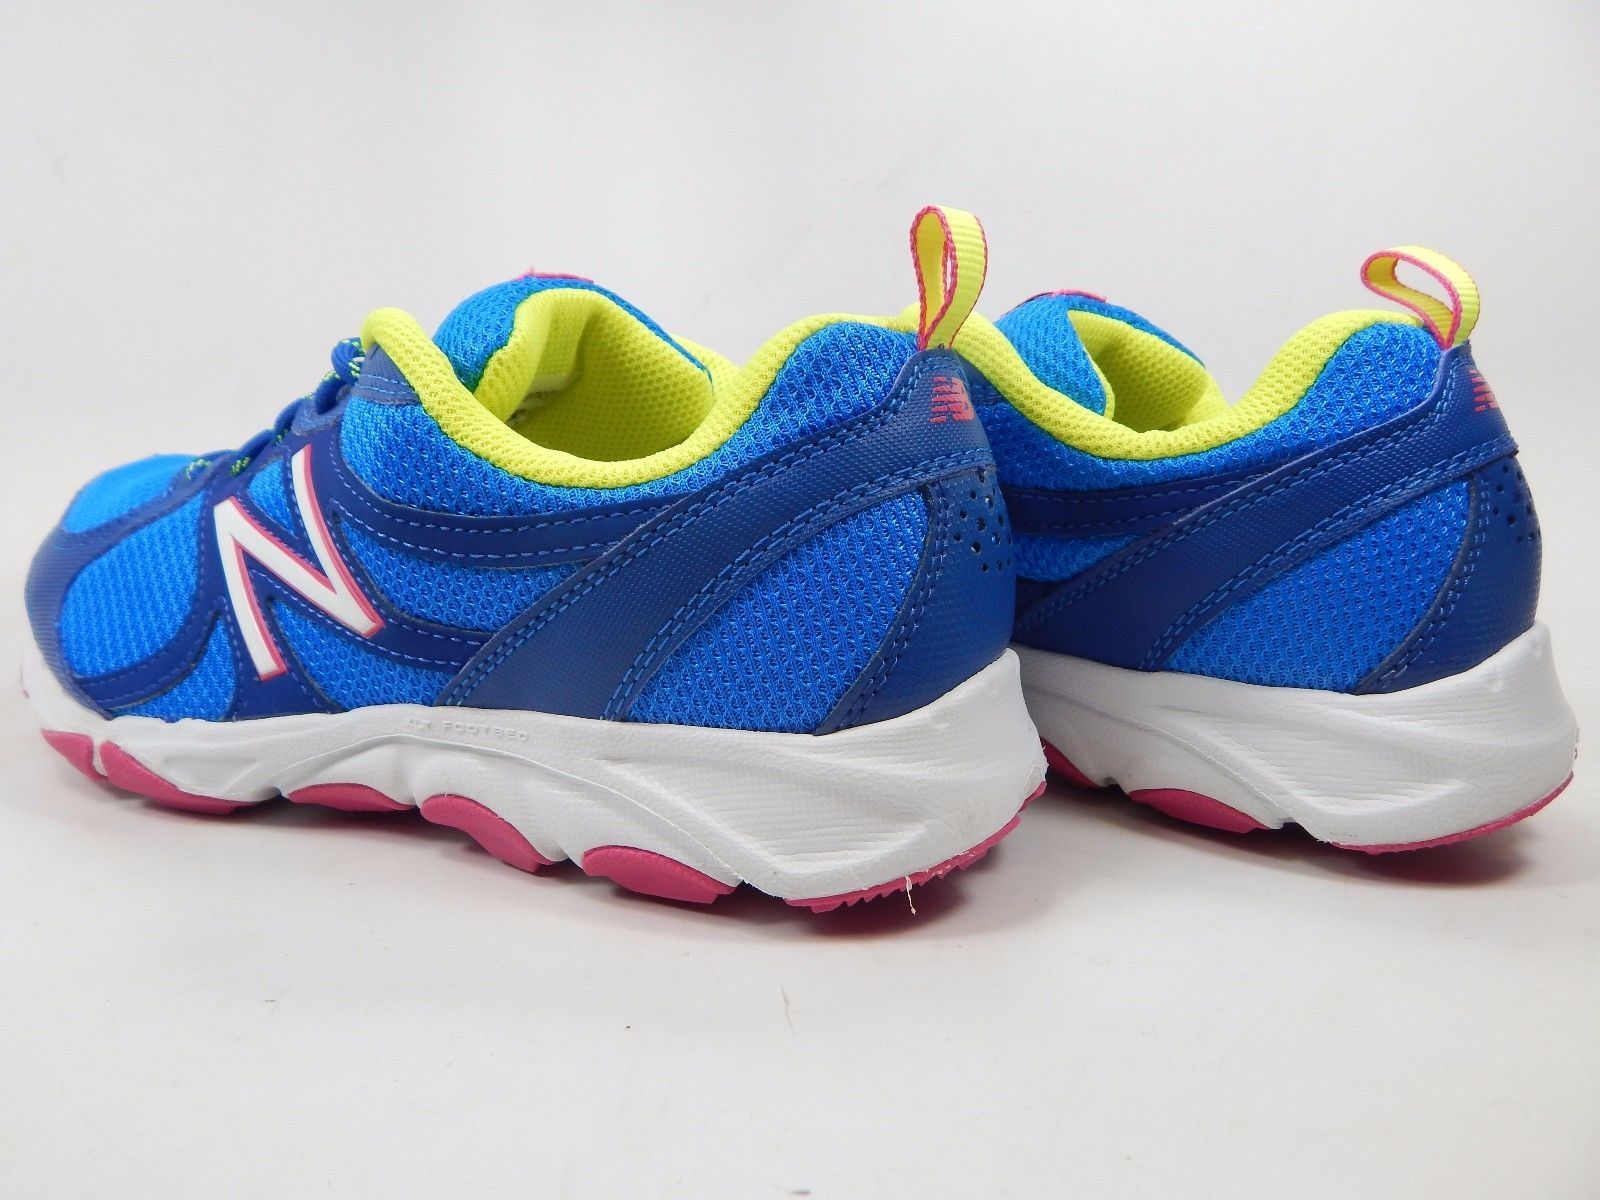 New Balance 320 v1 Women's Trail Running Shoes Size US 9 M (B) EU 40.5 WT320BY1